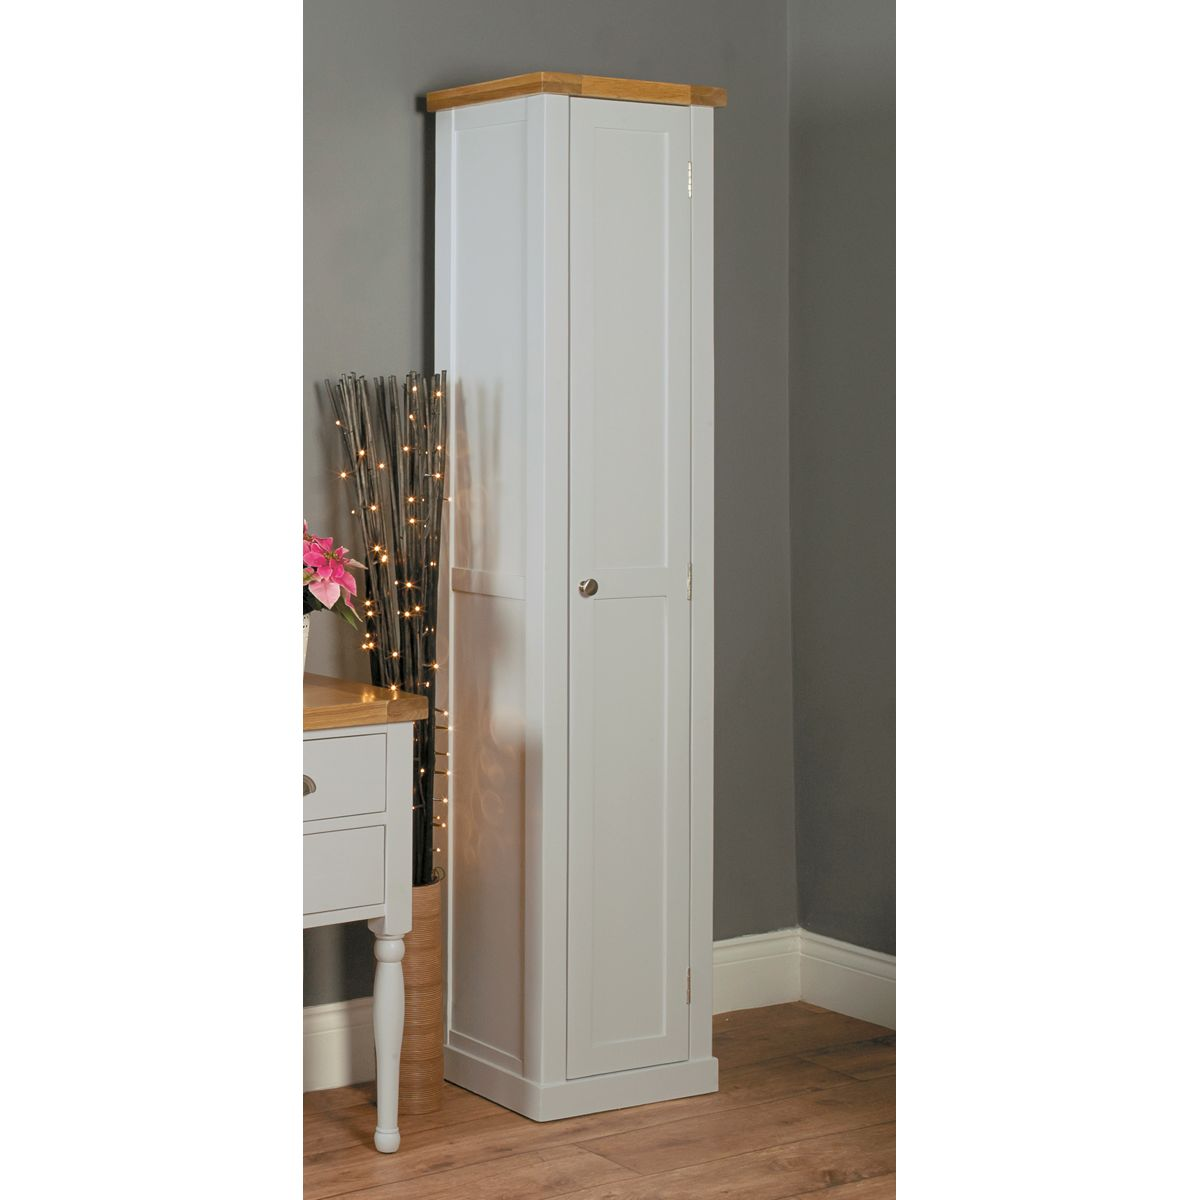 chadwick grey tall shoe cupboard buy online at wooden furniture store chadwick satin lacquered oak hidden